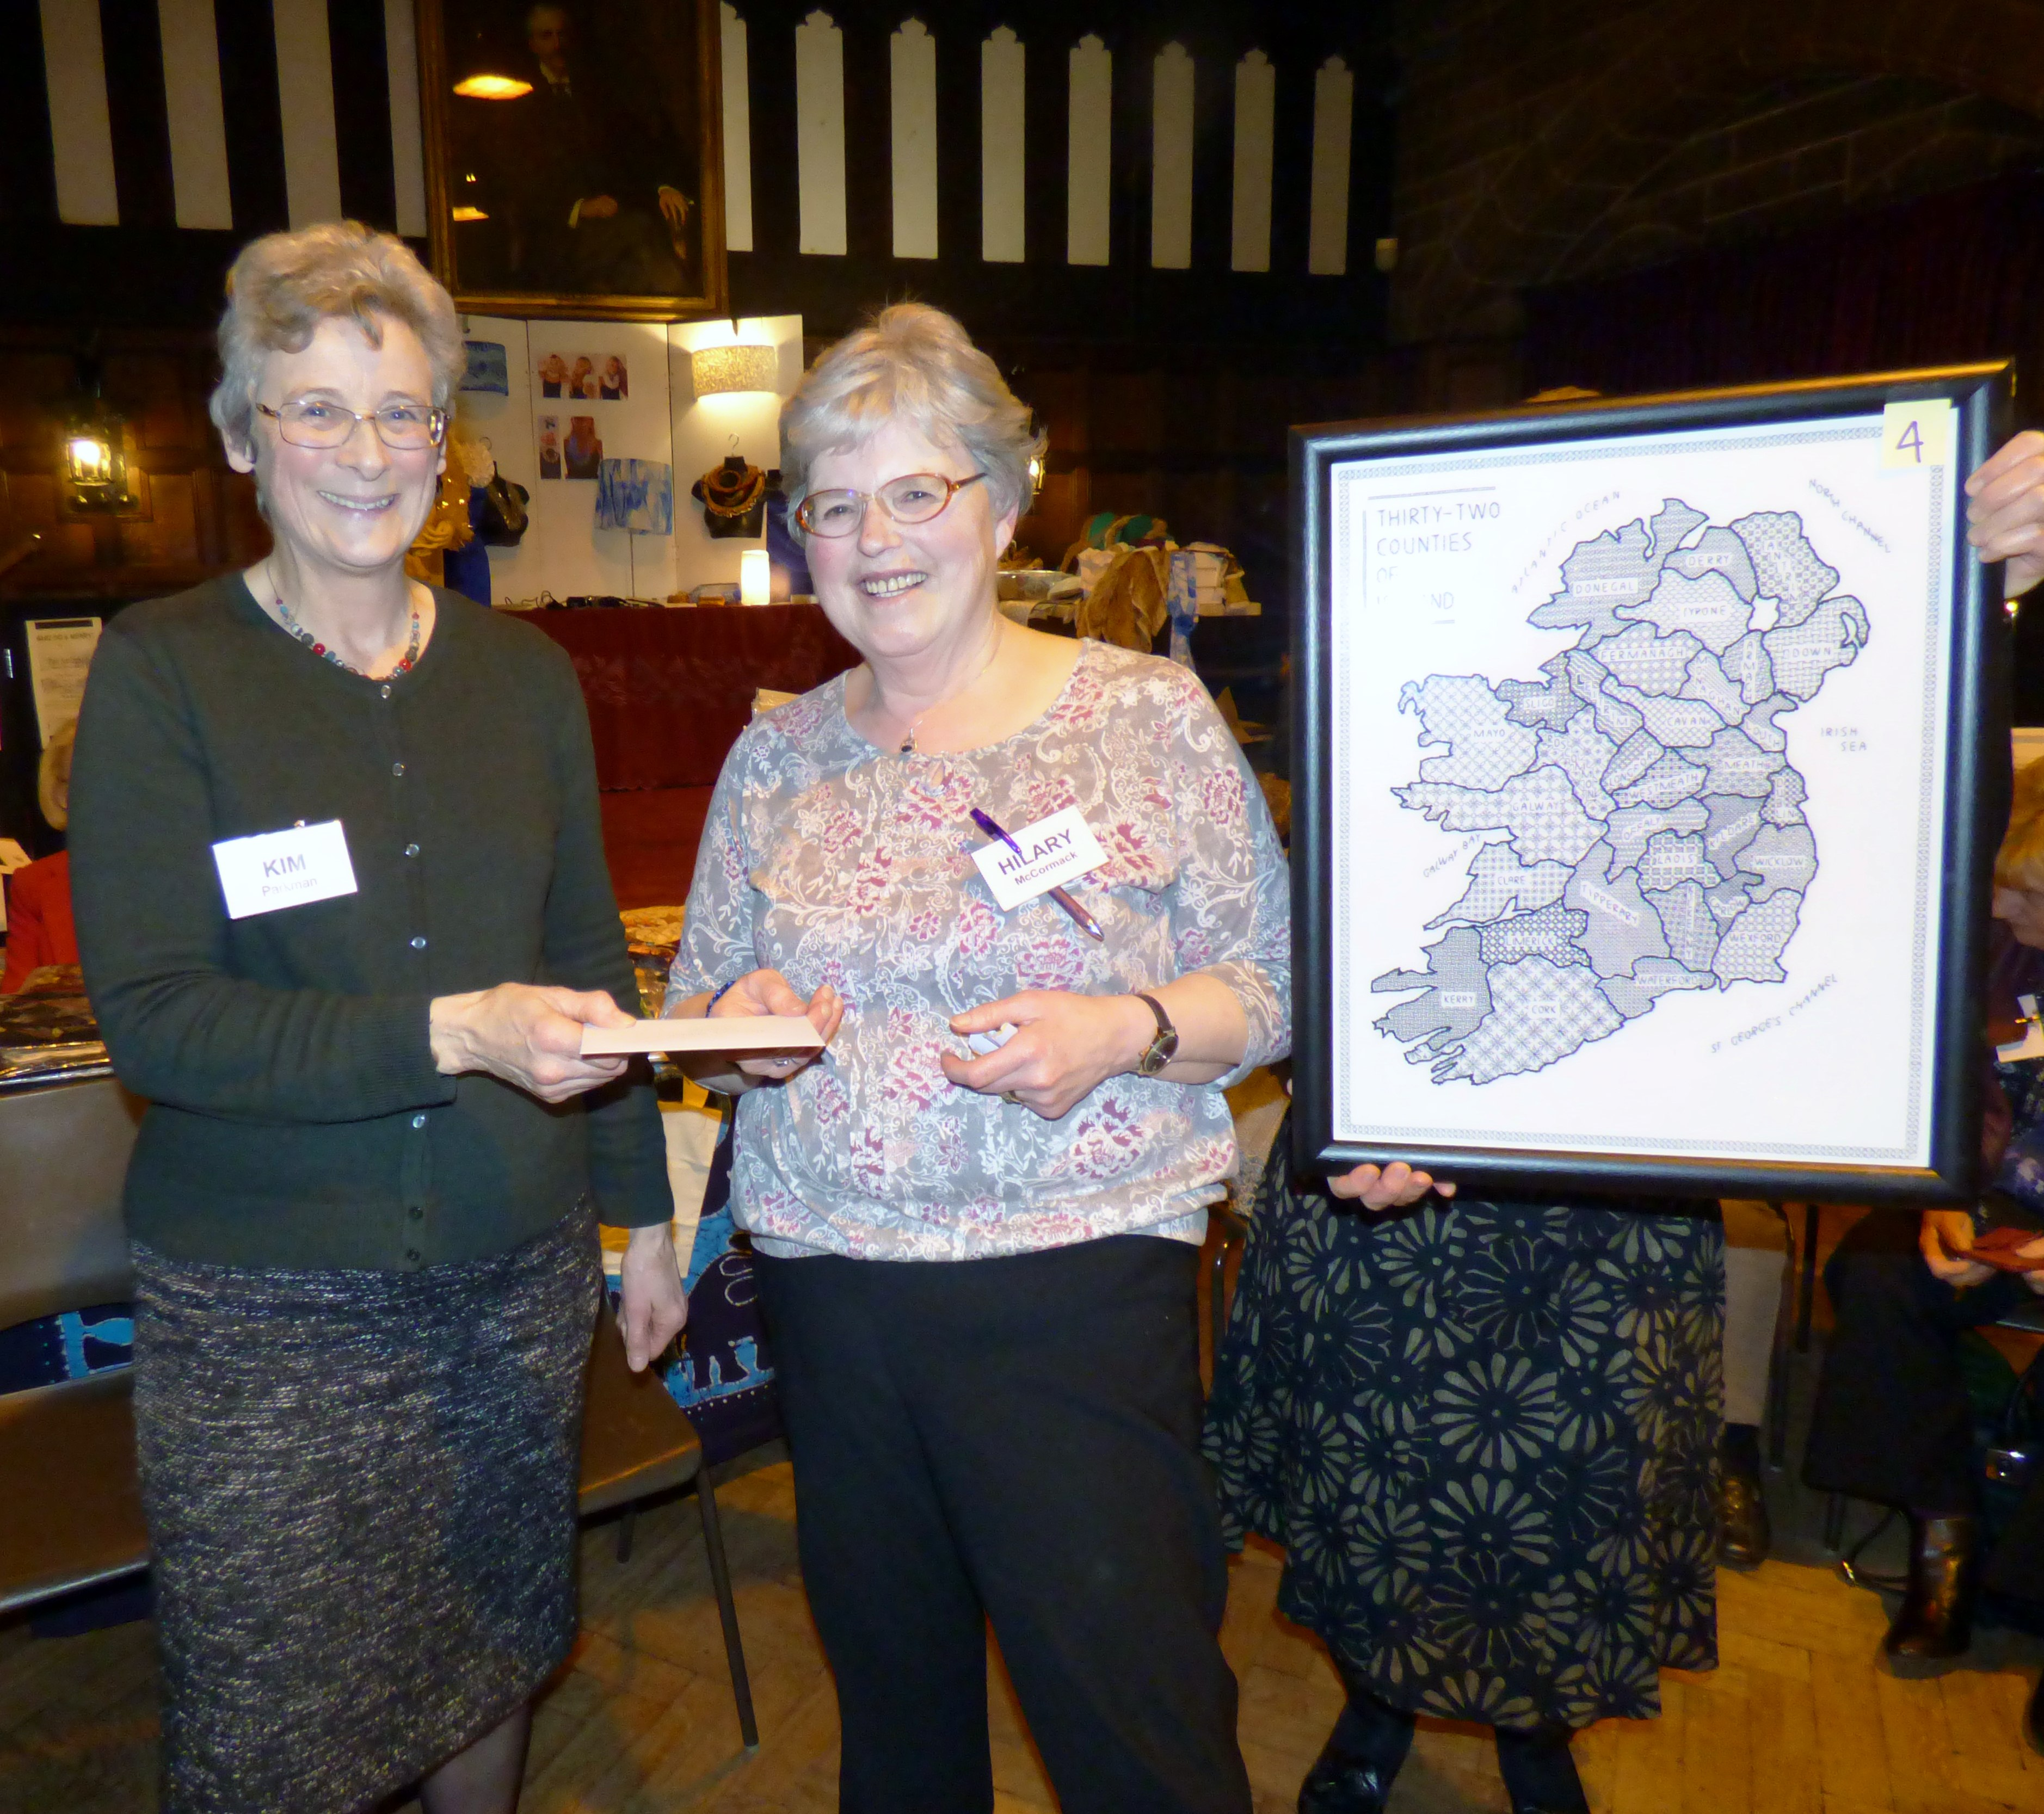 Hilary McCormack with her winning entry to Traditional Stitch Competition at MEG Winter Fair 2016